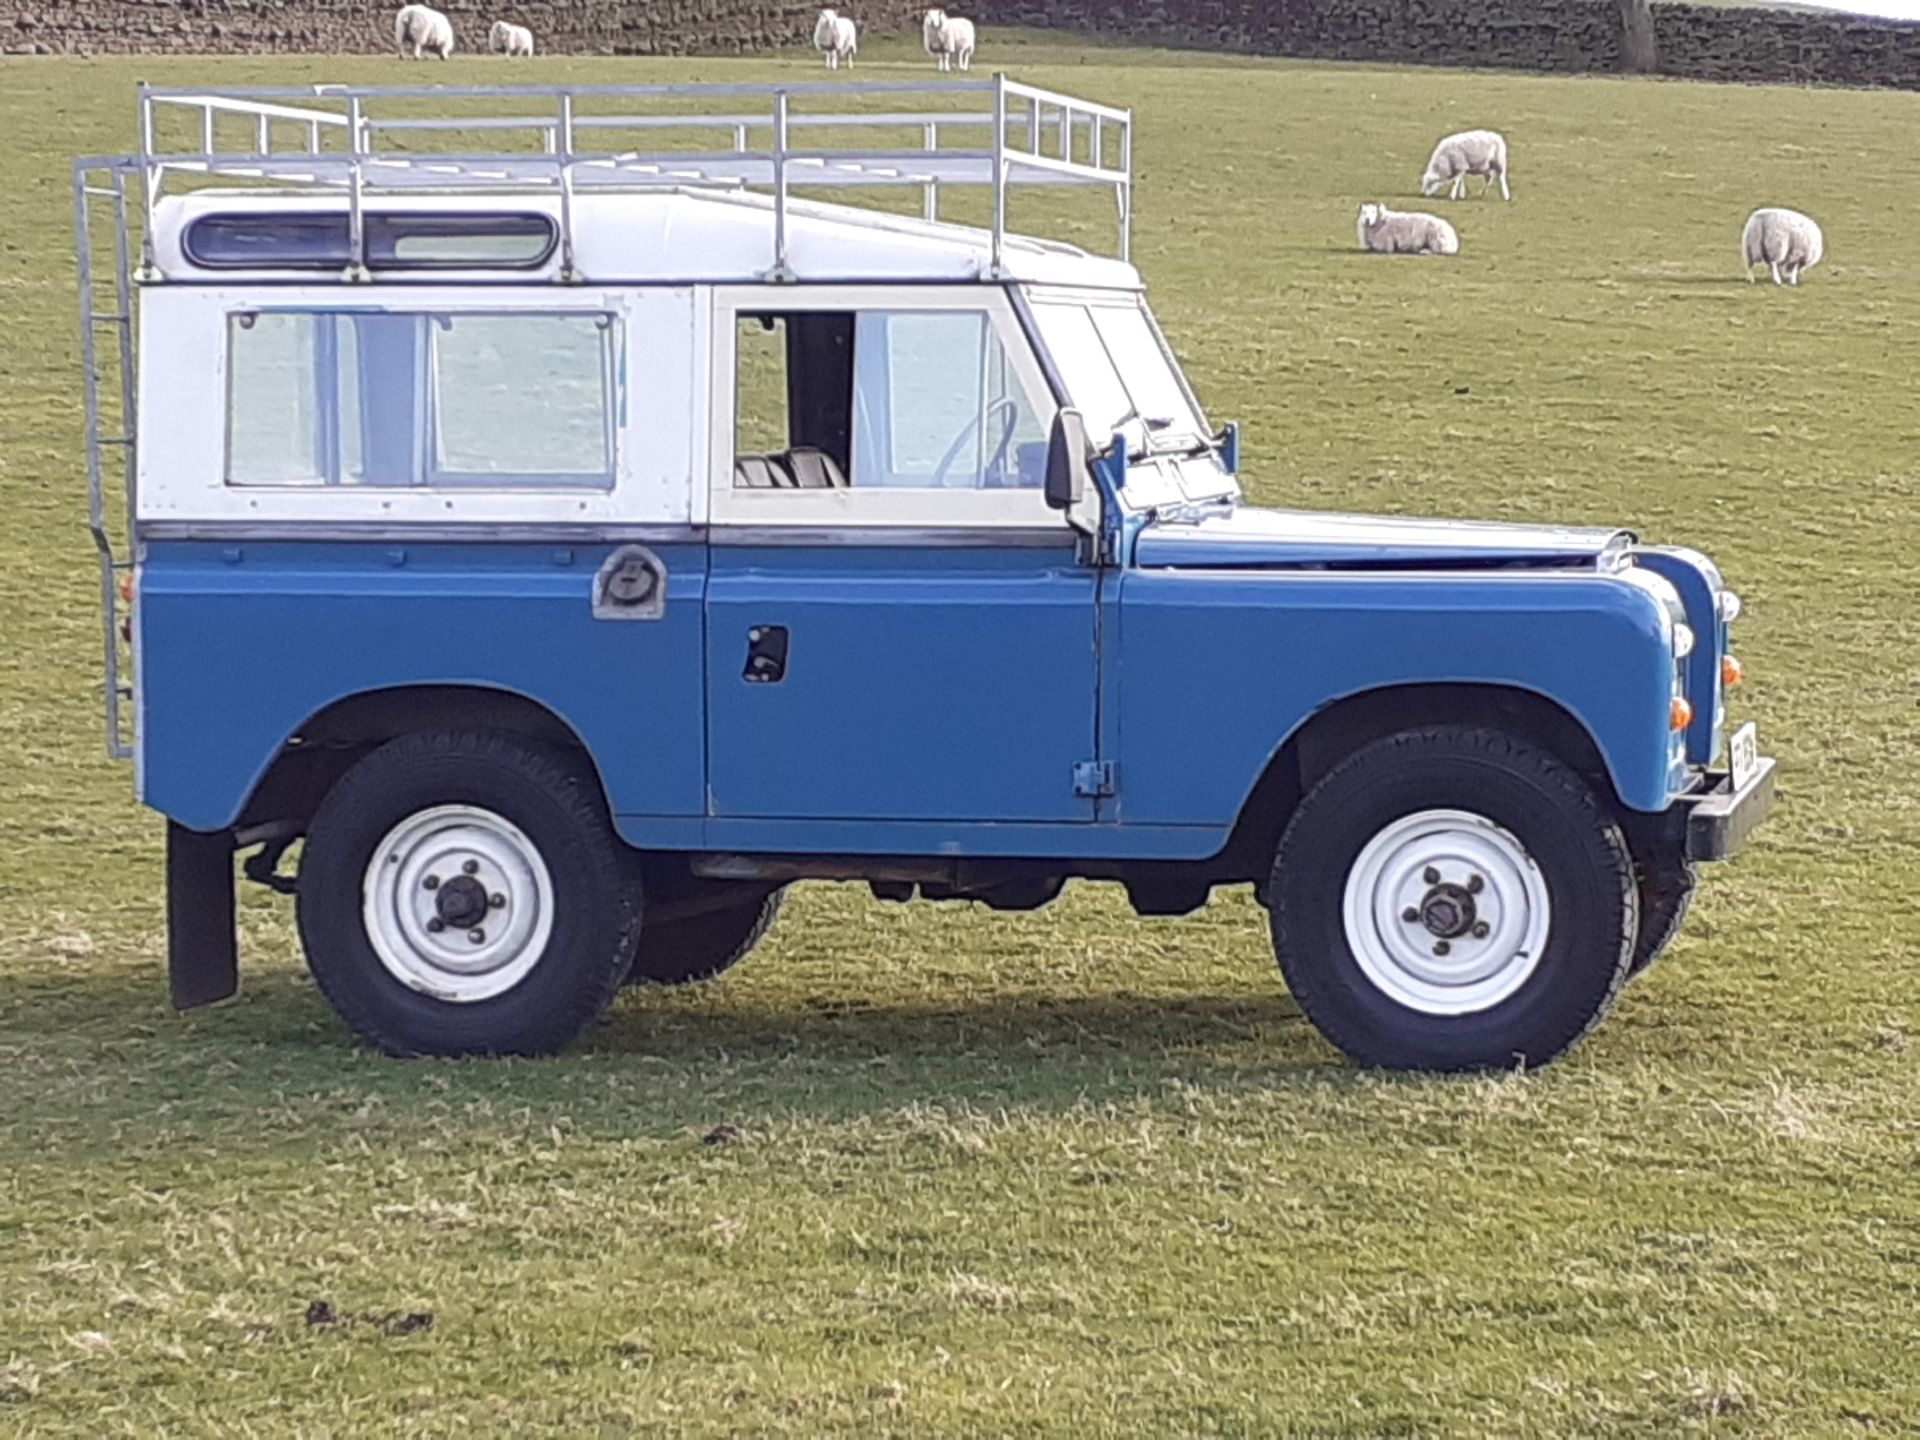 1980 LAND ROVER SERIES III CLASSIC STATION WAGON, TAX AND MOT EXEMPT *NO VAT* - Image 14 of 22